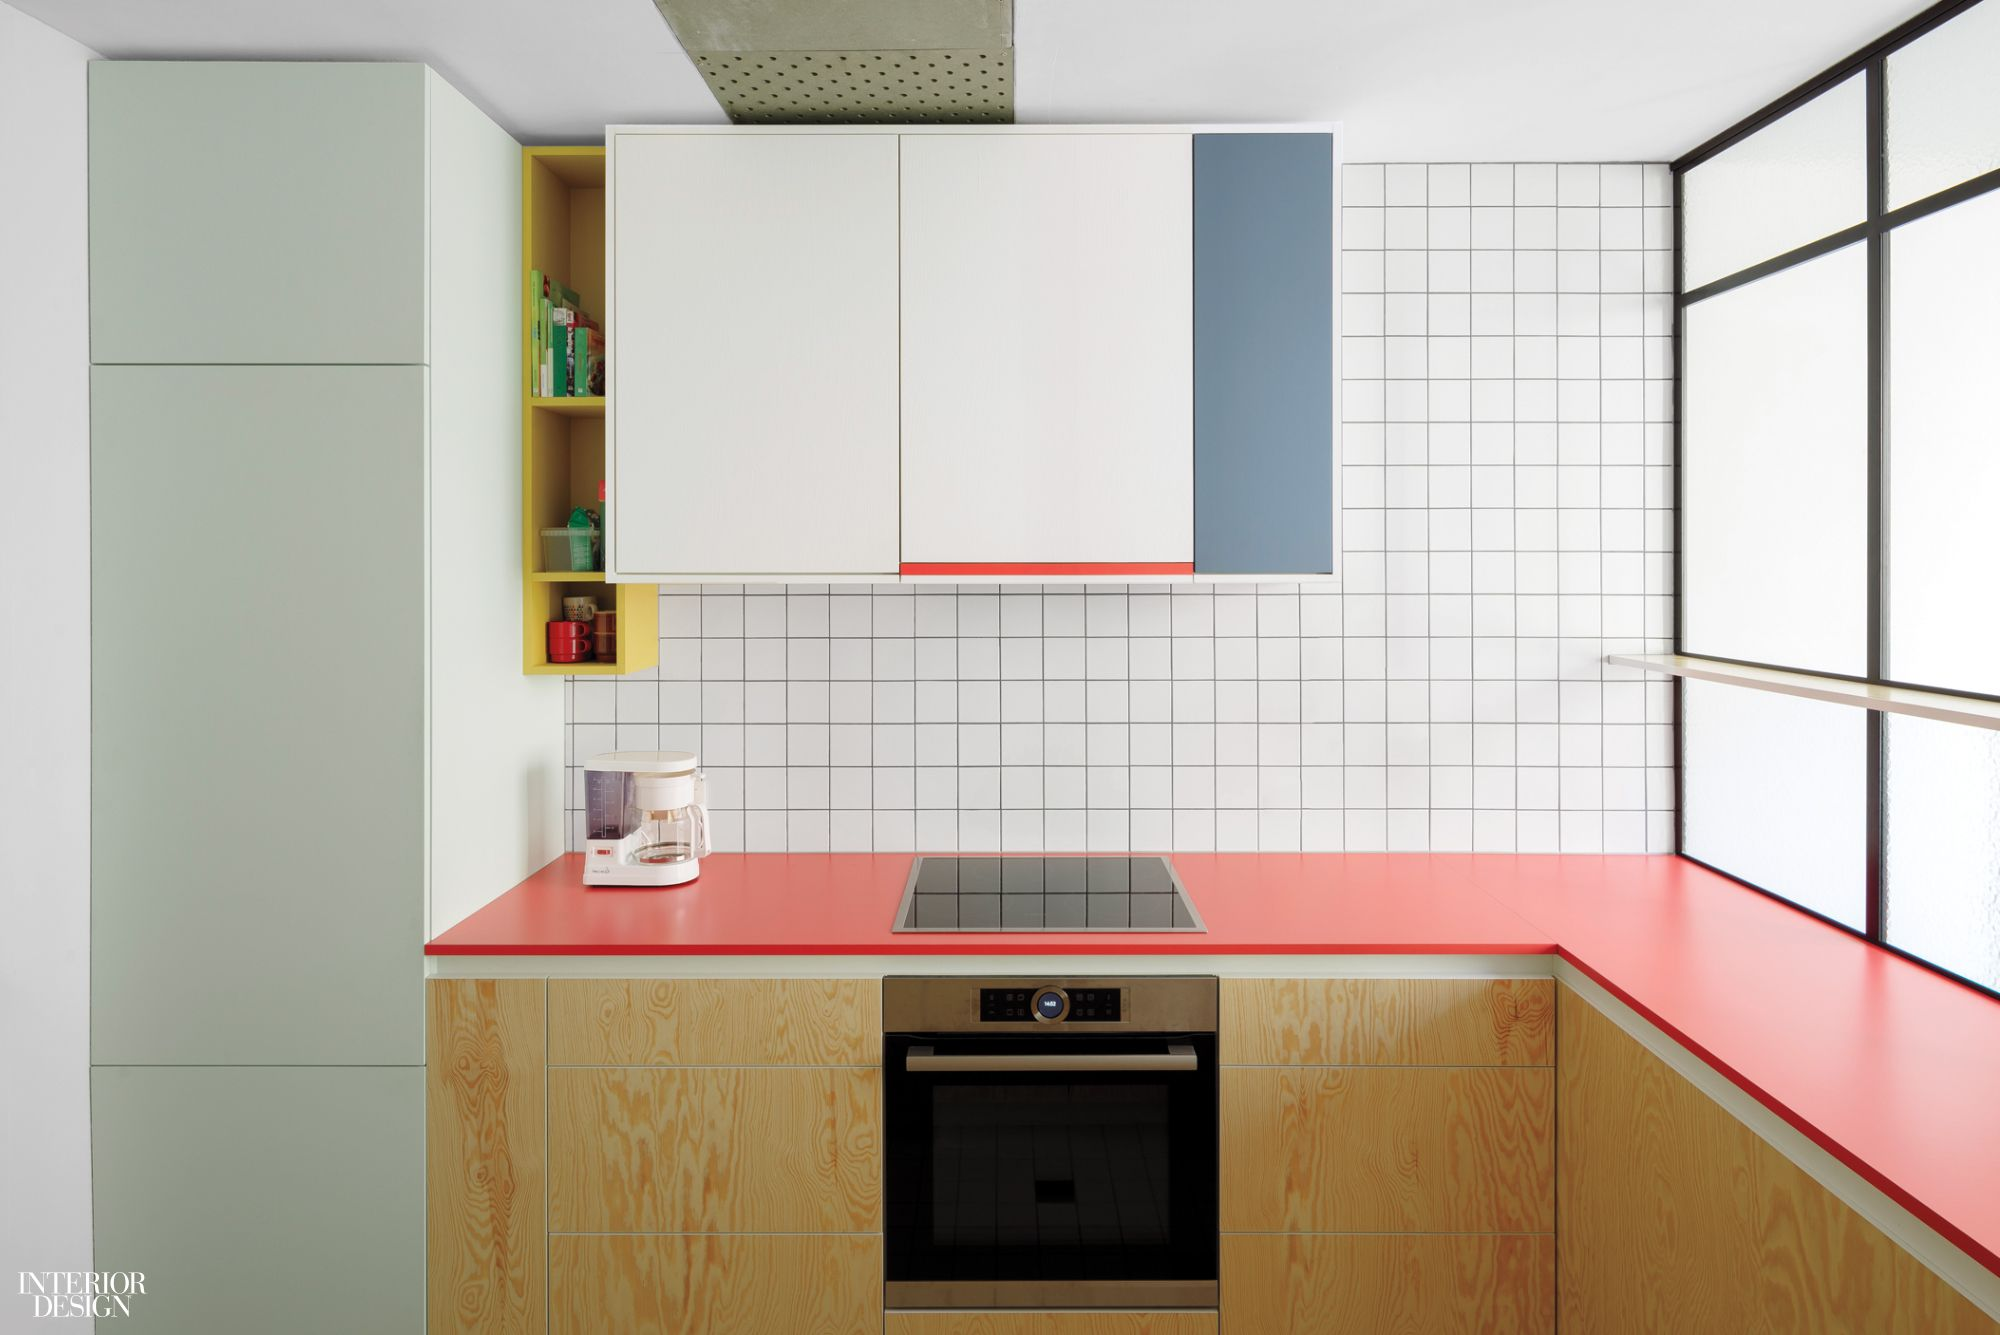 Dries Otten's Colorful Kitchens Evoke Abstract Canvases   Interior ...